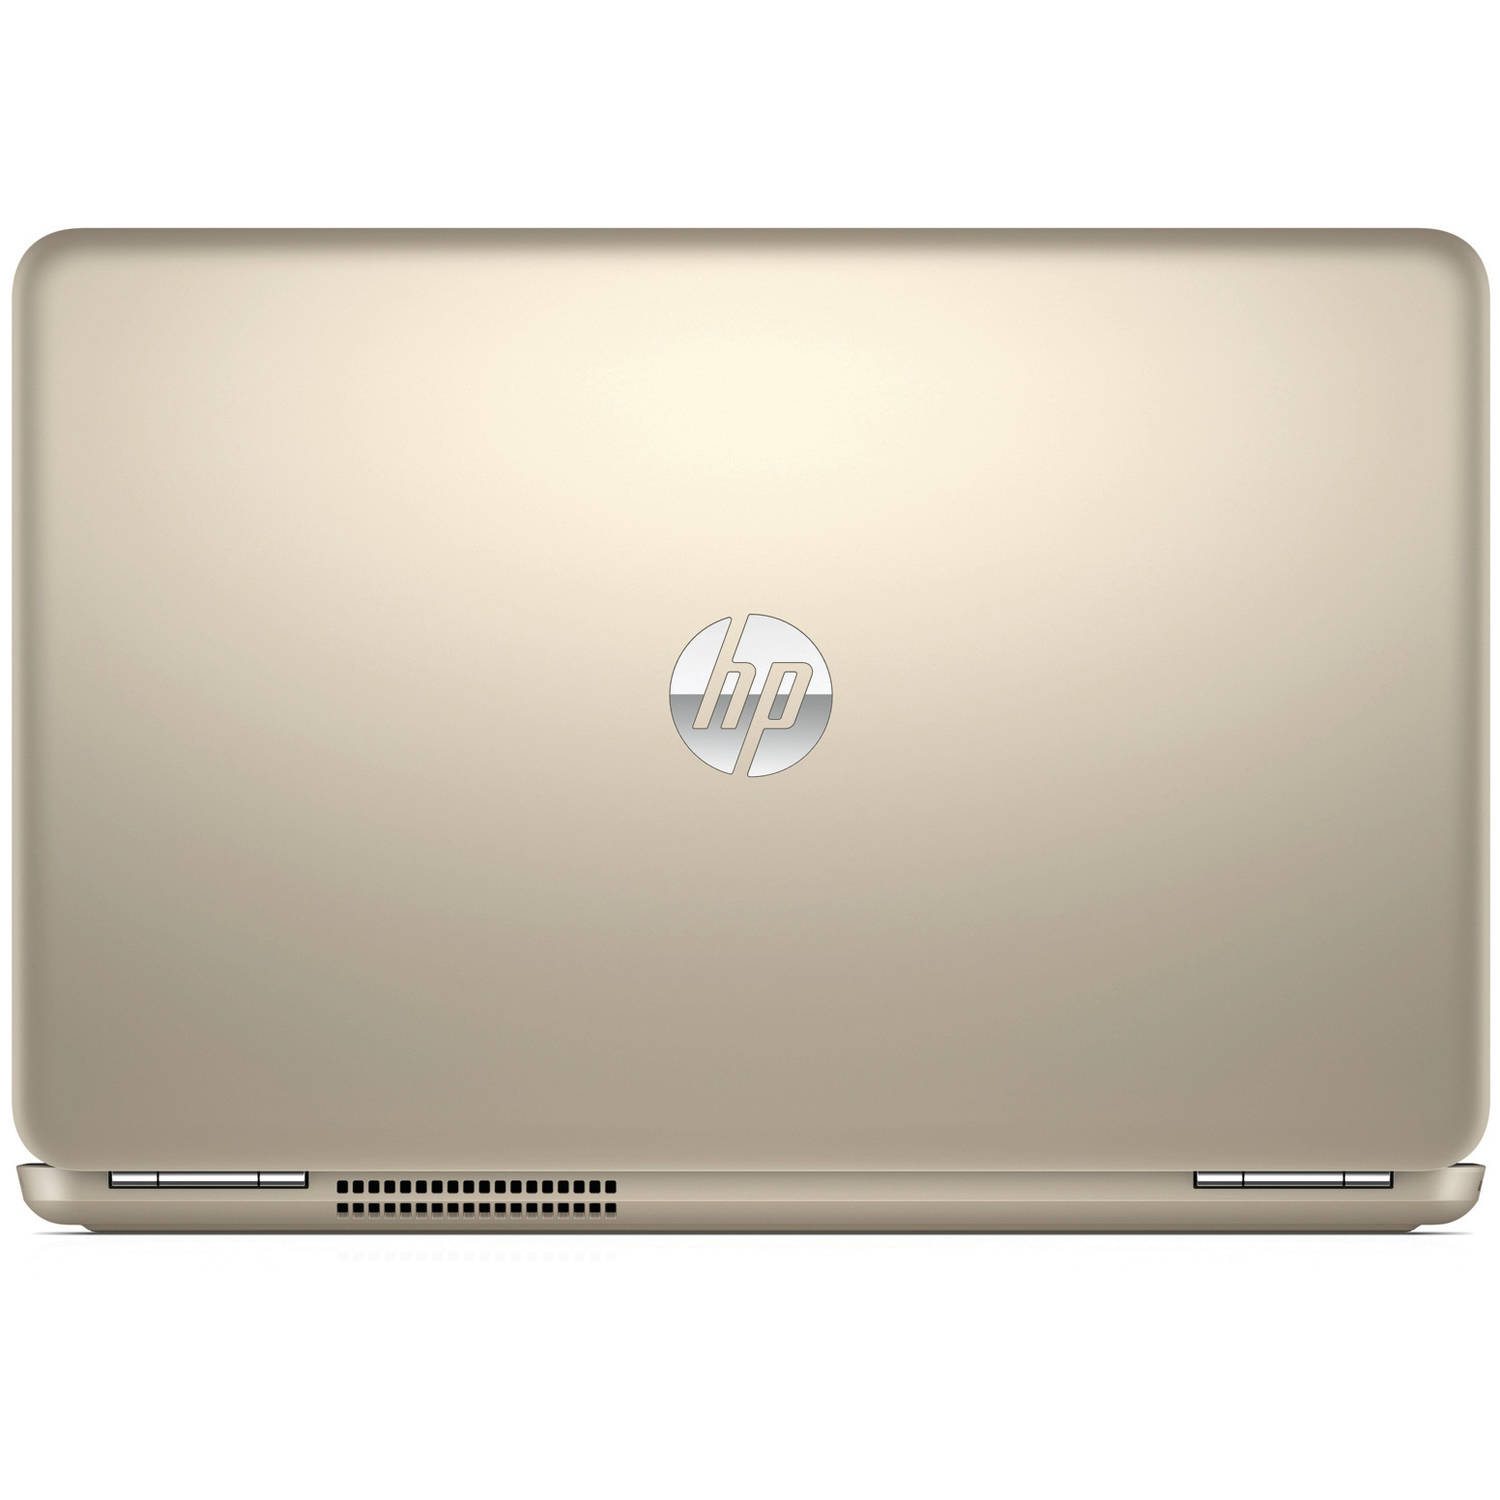 Hp Pavilion 15 notebook Pc instruction Manual windows 7 64 bit